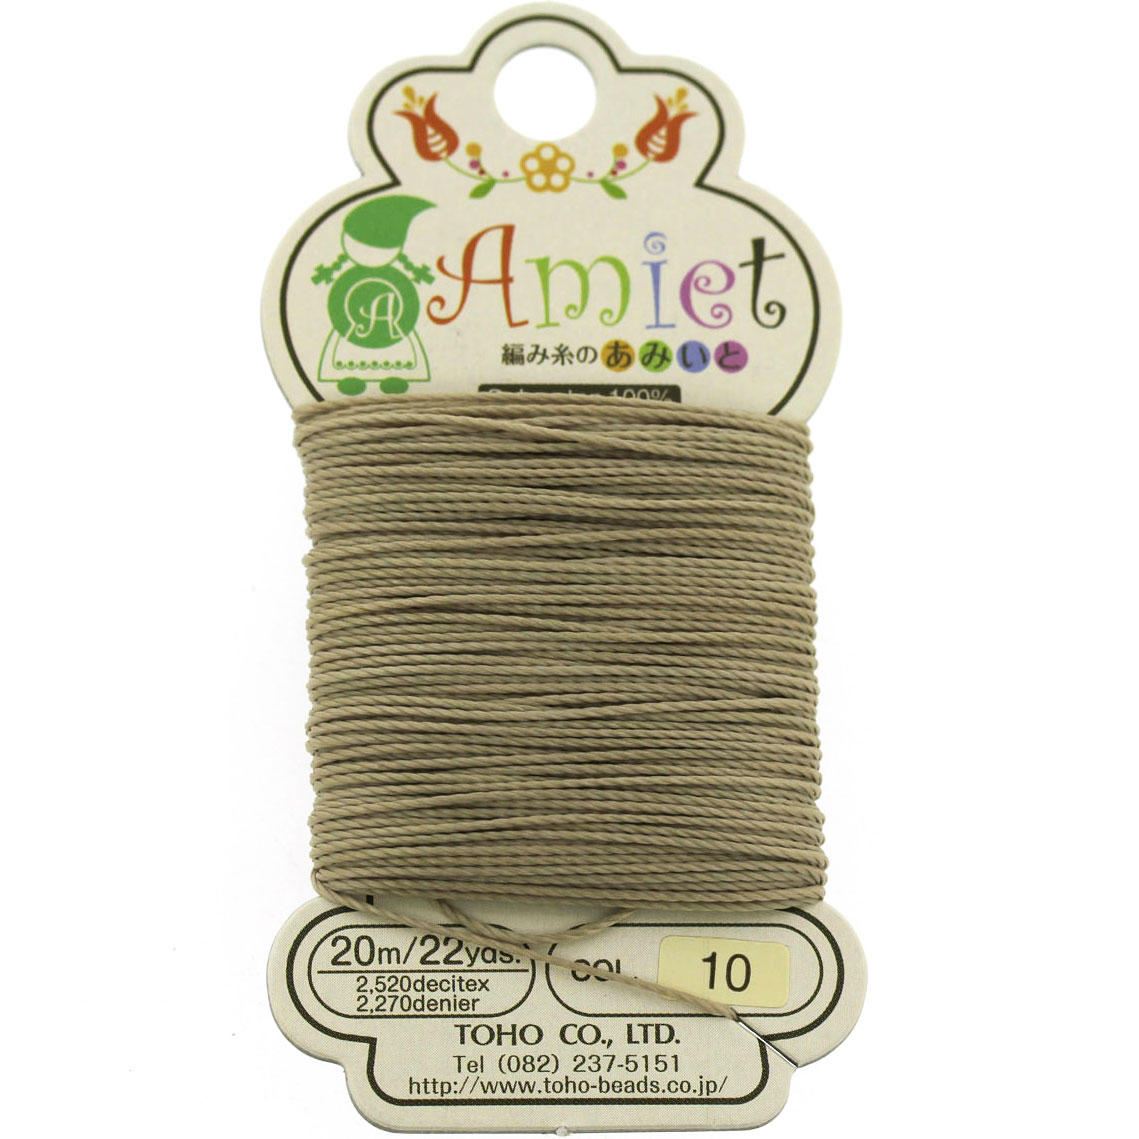 Amiet Sand Polyester Bead Cord